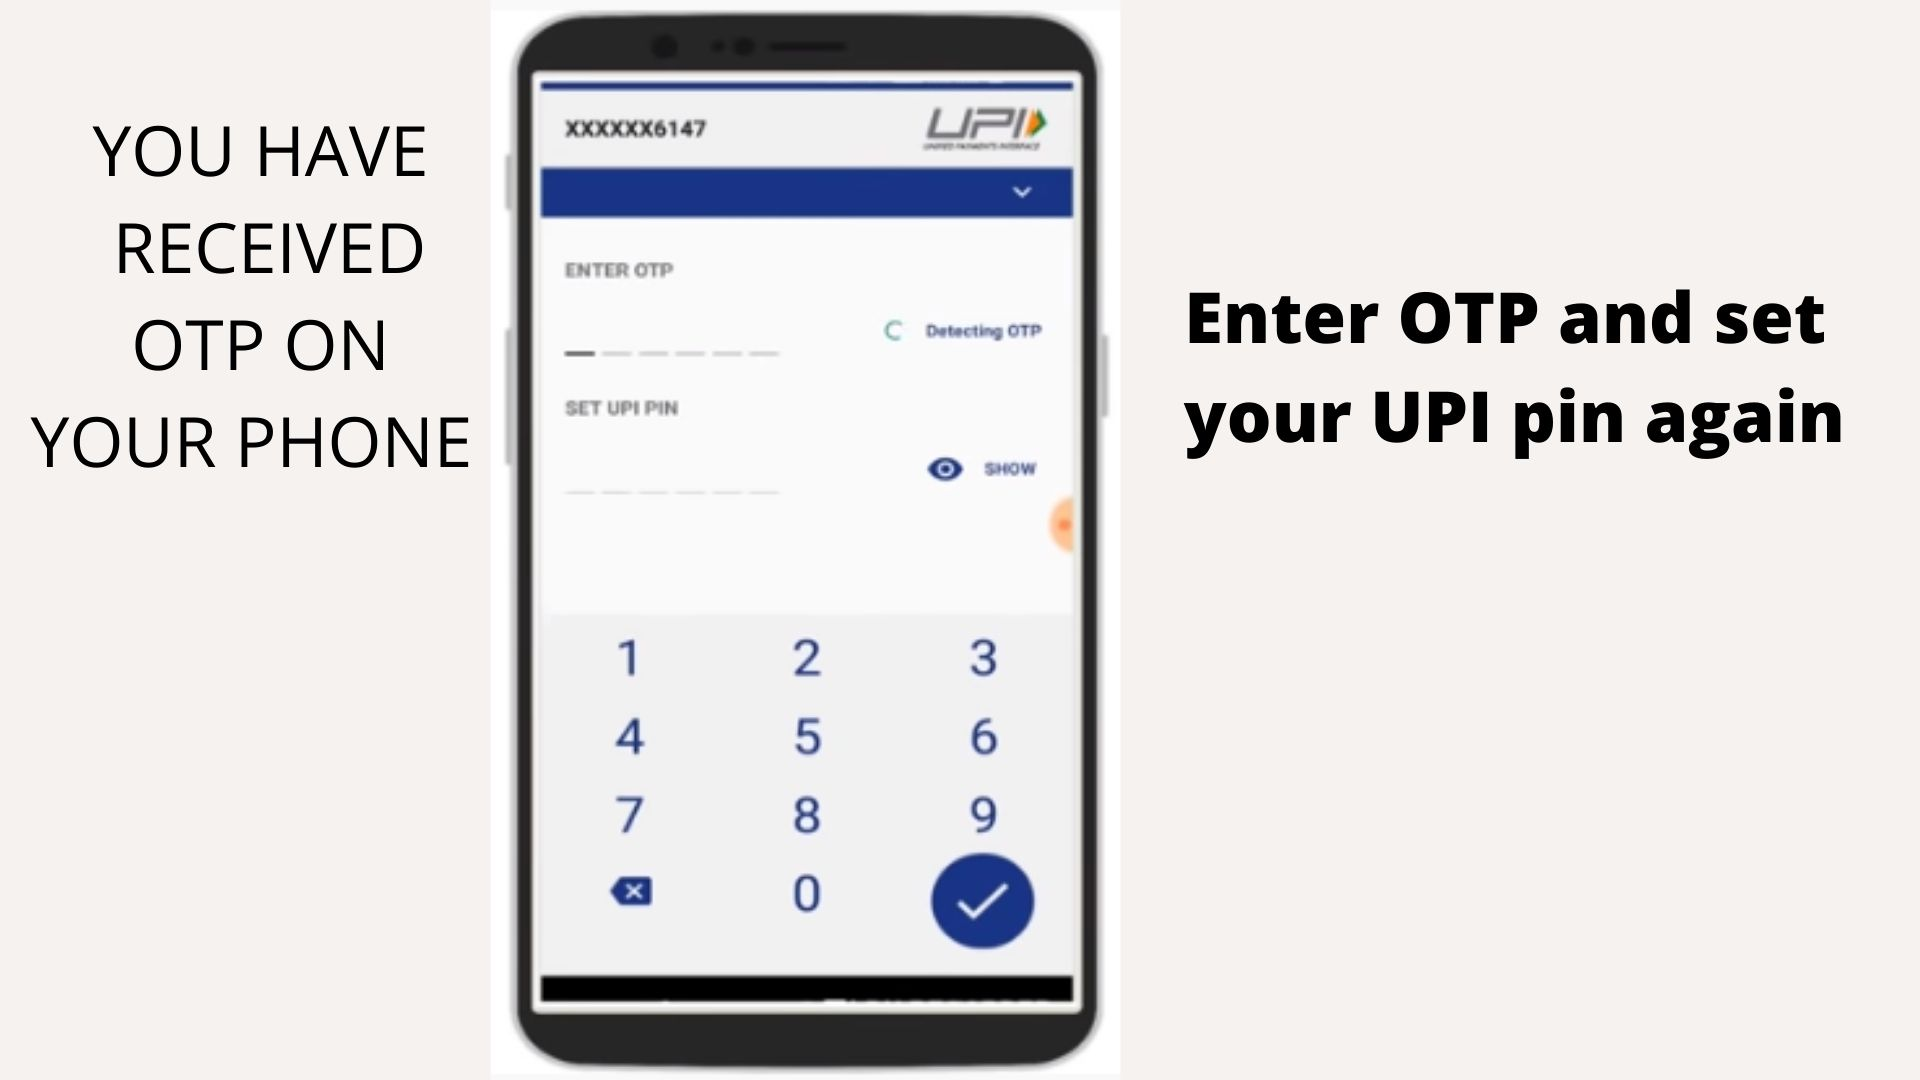 After submitting OTP you can set new UPI PIn